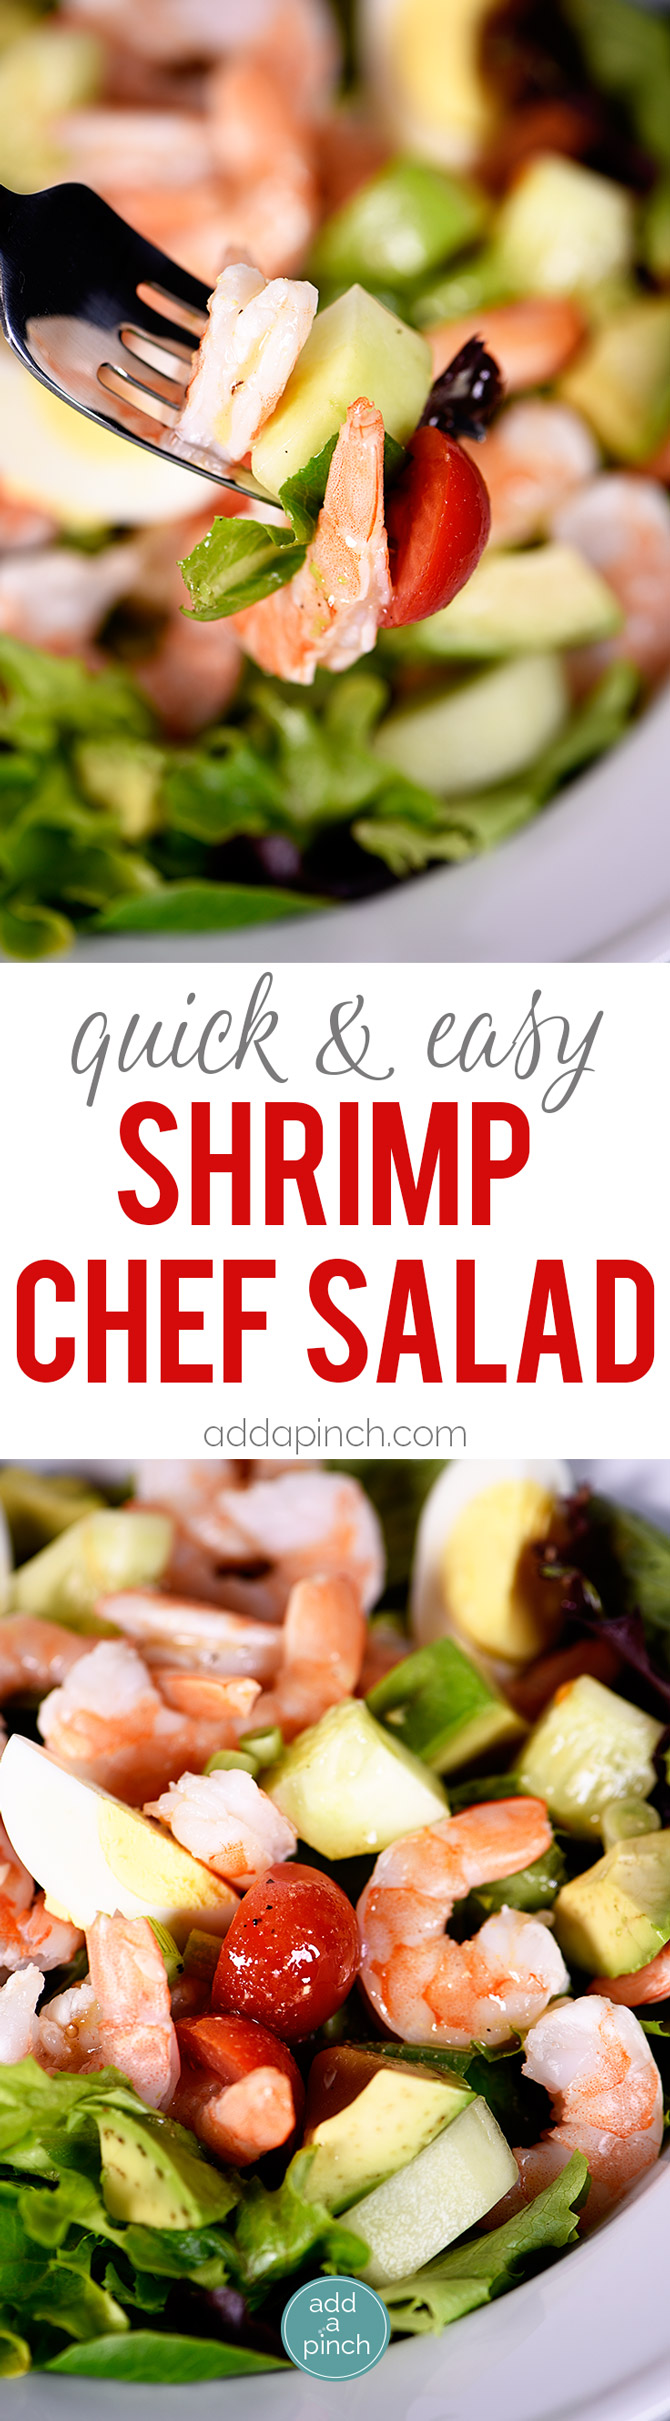 Shrimp Chef Salad Recipe comes together quickly for an easy meal for lunch or supper! Packed full of flavor, this salad recipe is one I turn to time and again. // addapinch.com